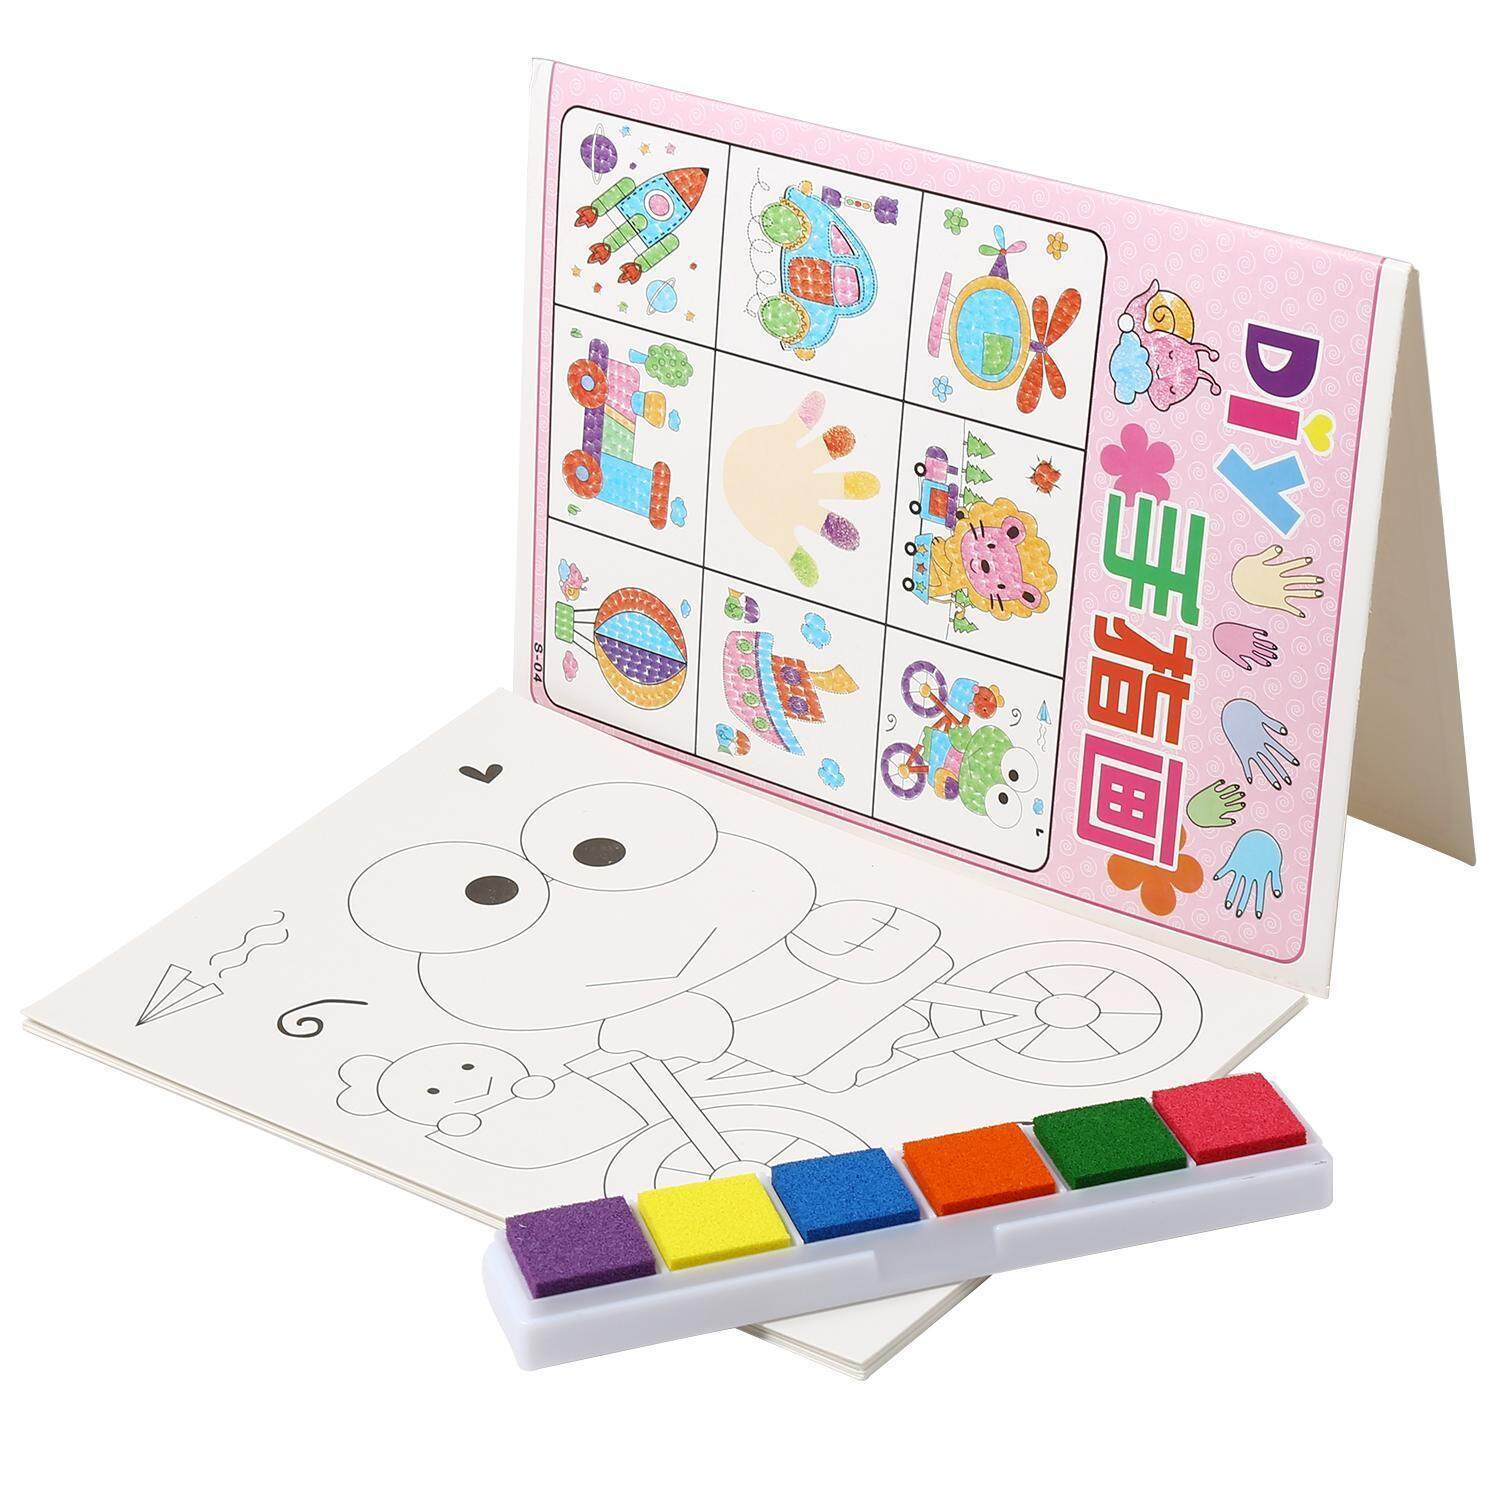 Toprank Colorful Fingerpaint Kit Kid Finger Painting Craft Set Drawing DIY Education Toy ( Neutral ) - intl